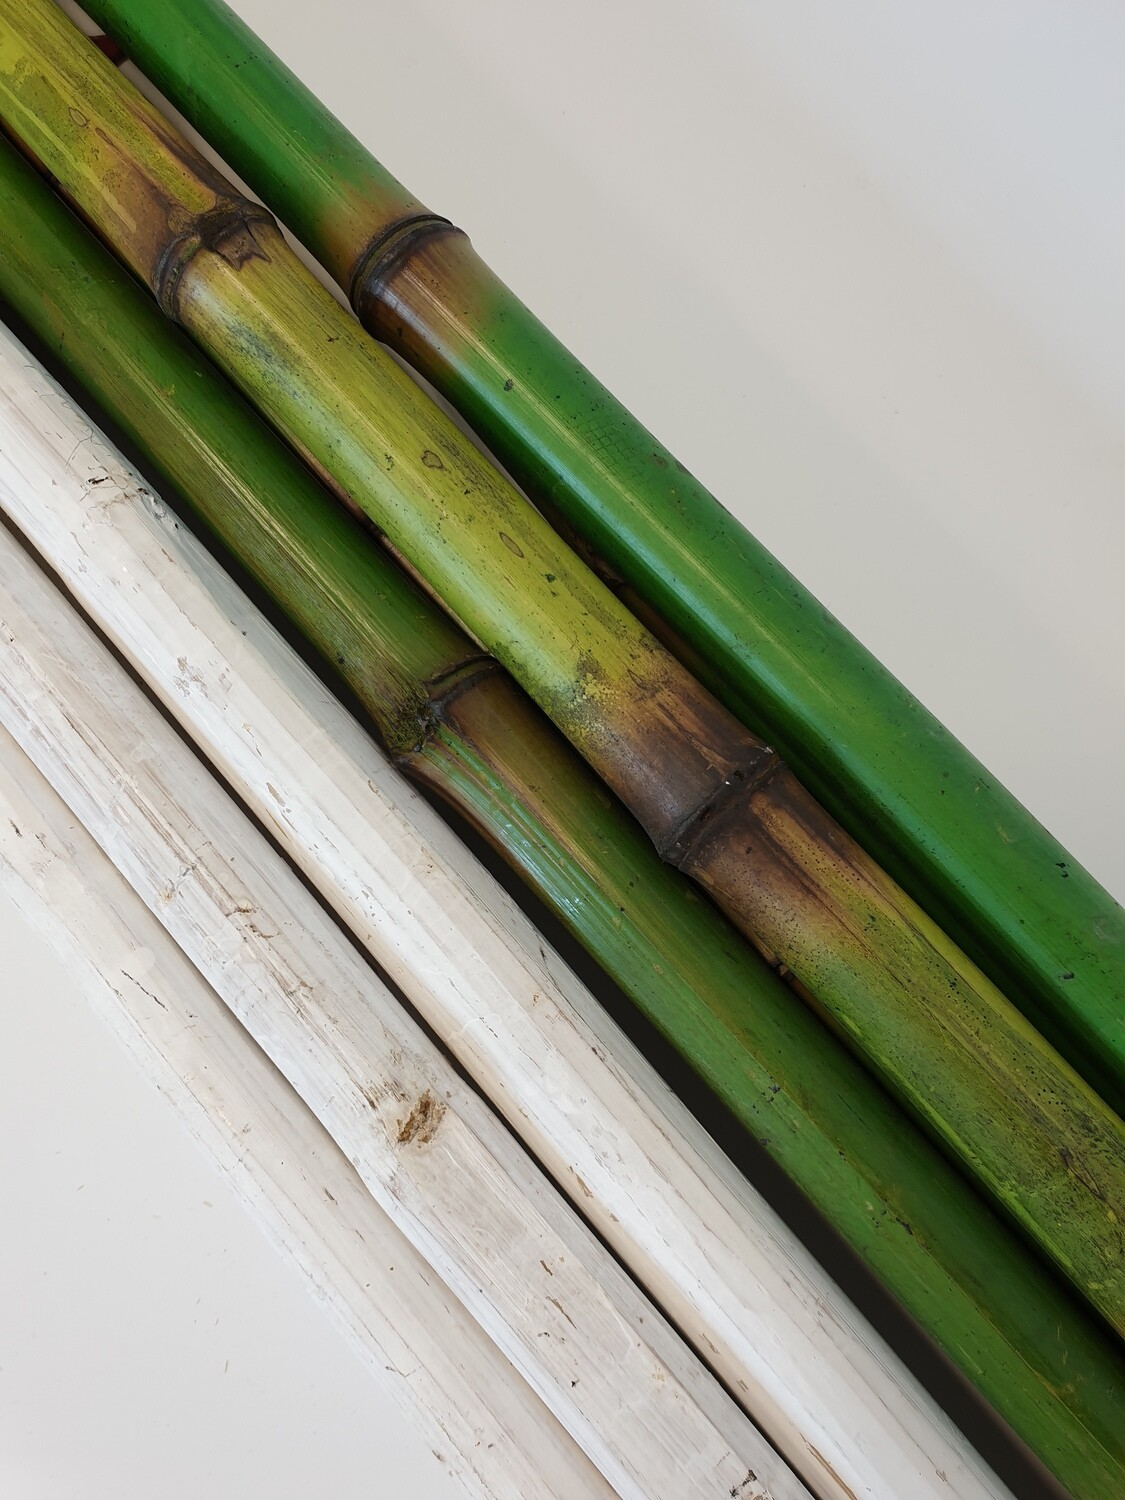 Bamboo coloured stems